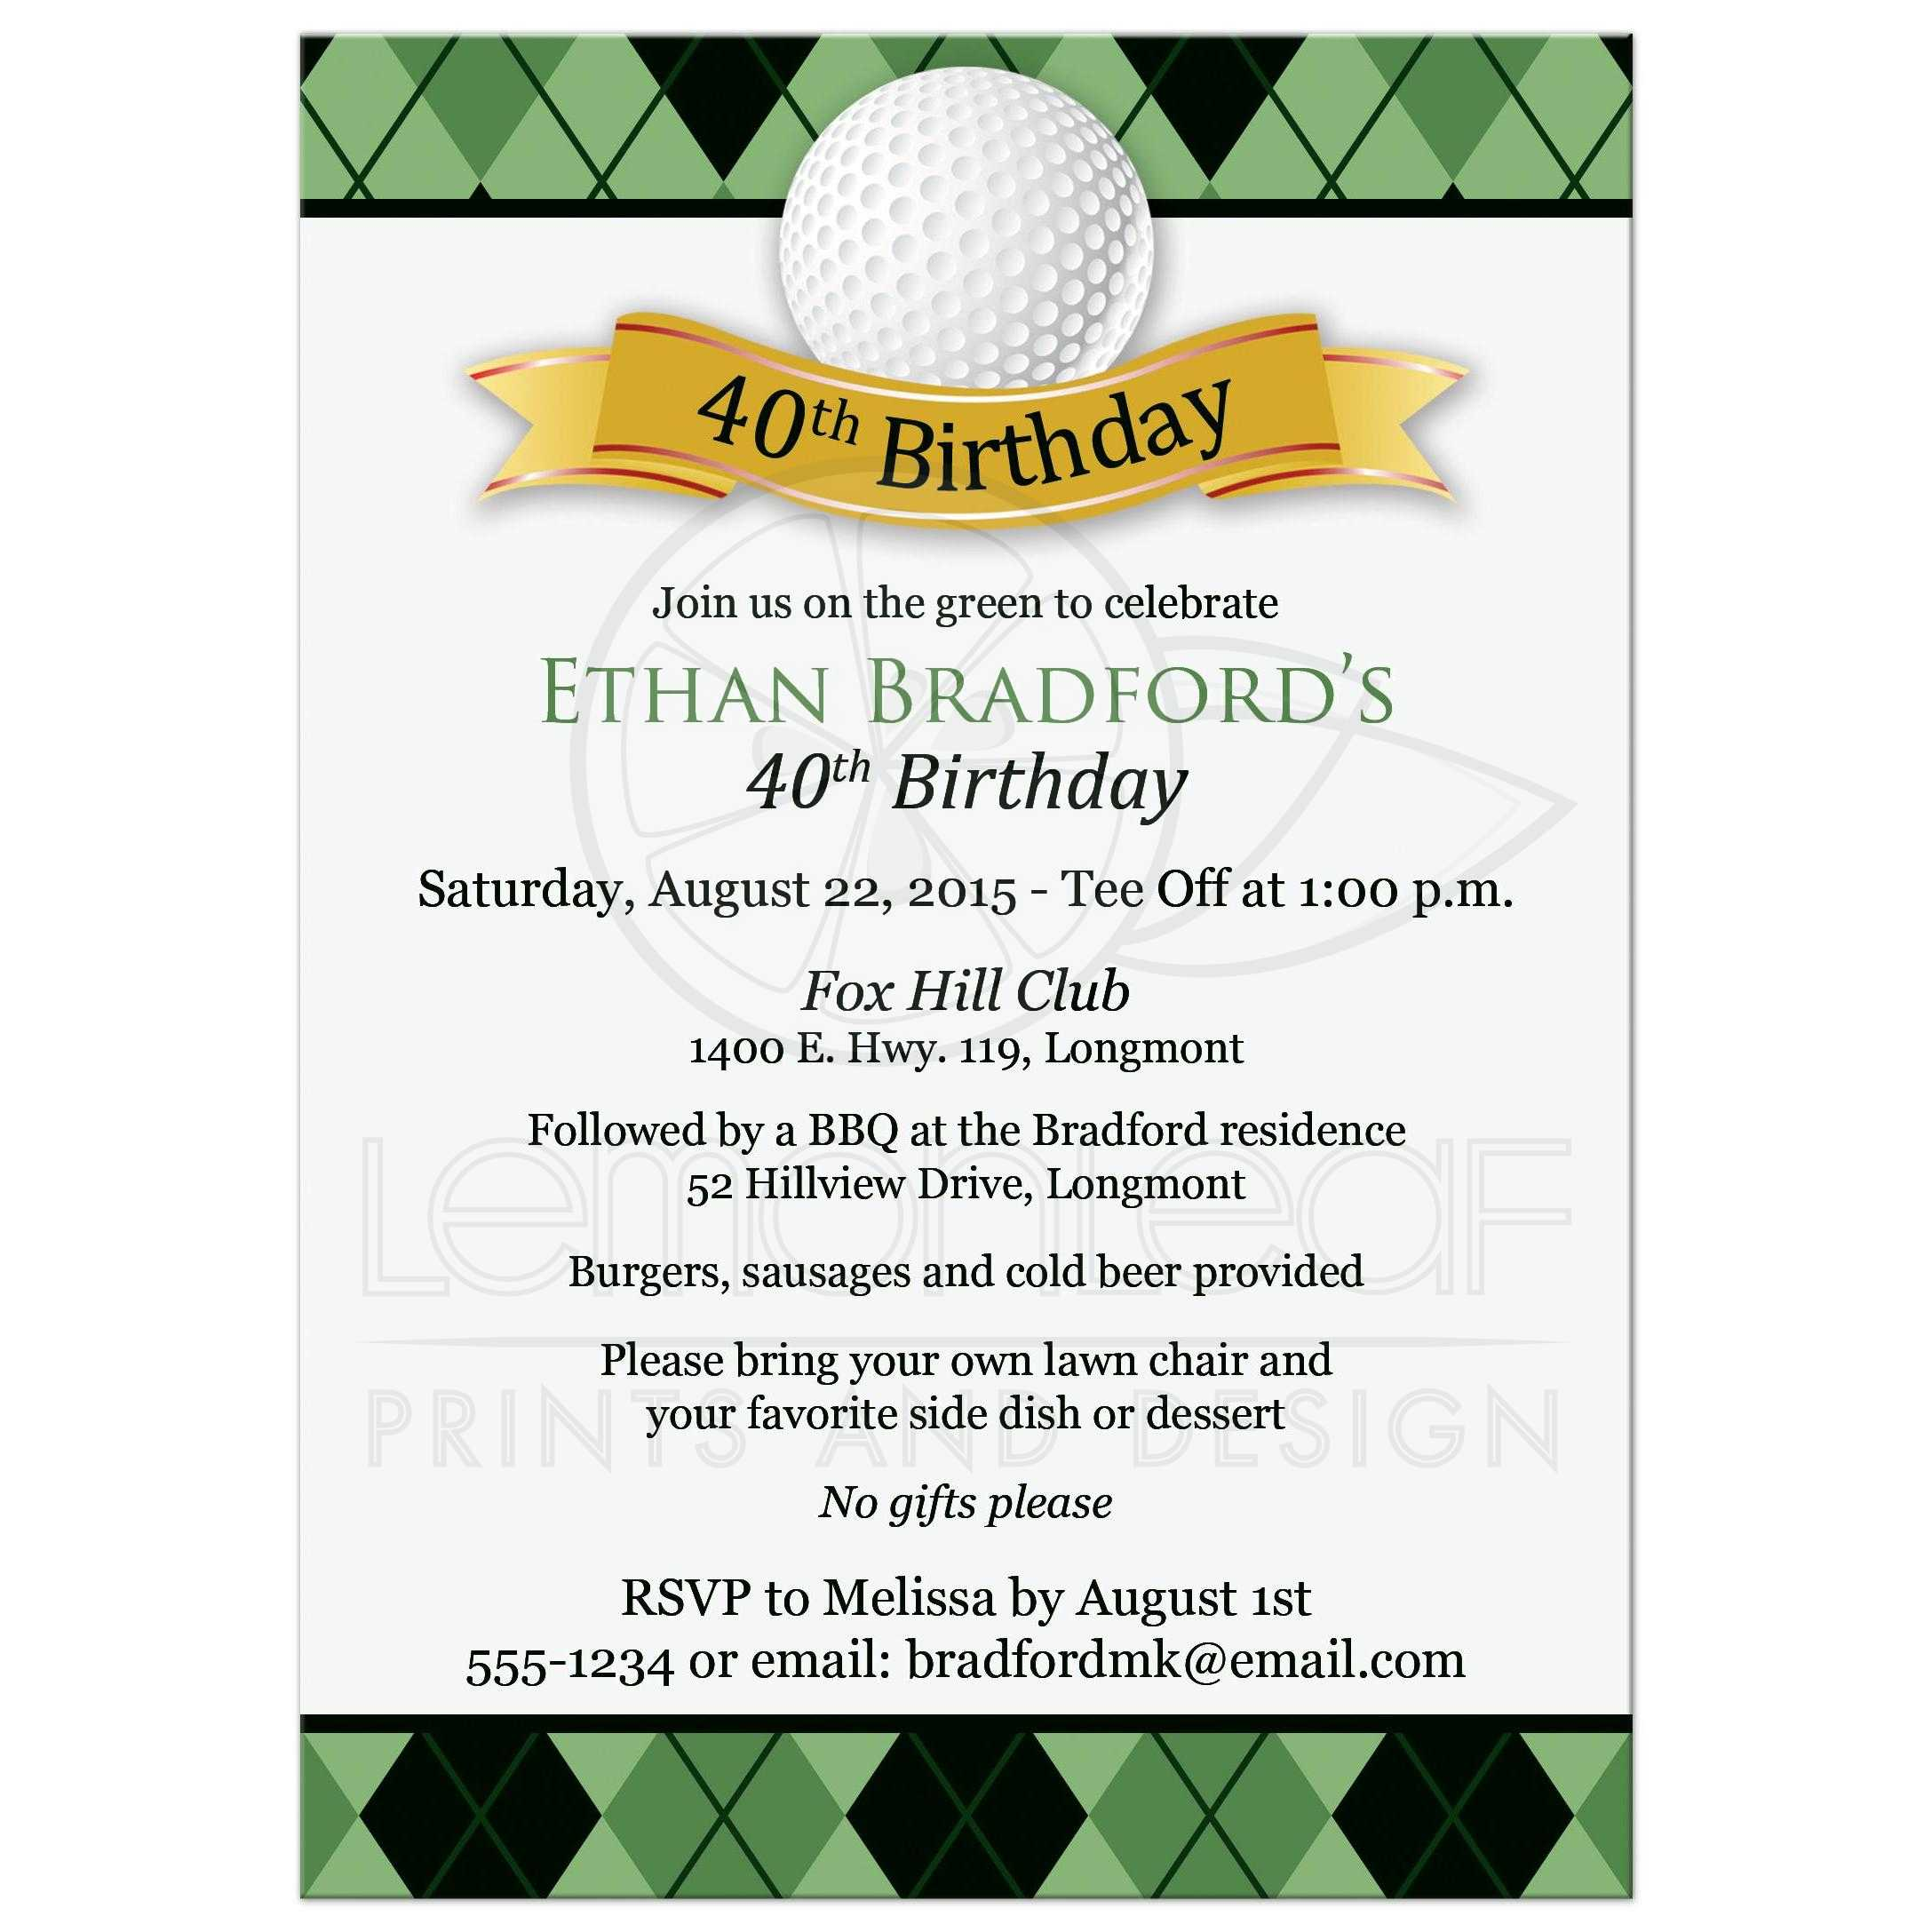 40th Birthday Party Invitation | Golf Theme | Green Argyle Plaid ...